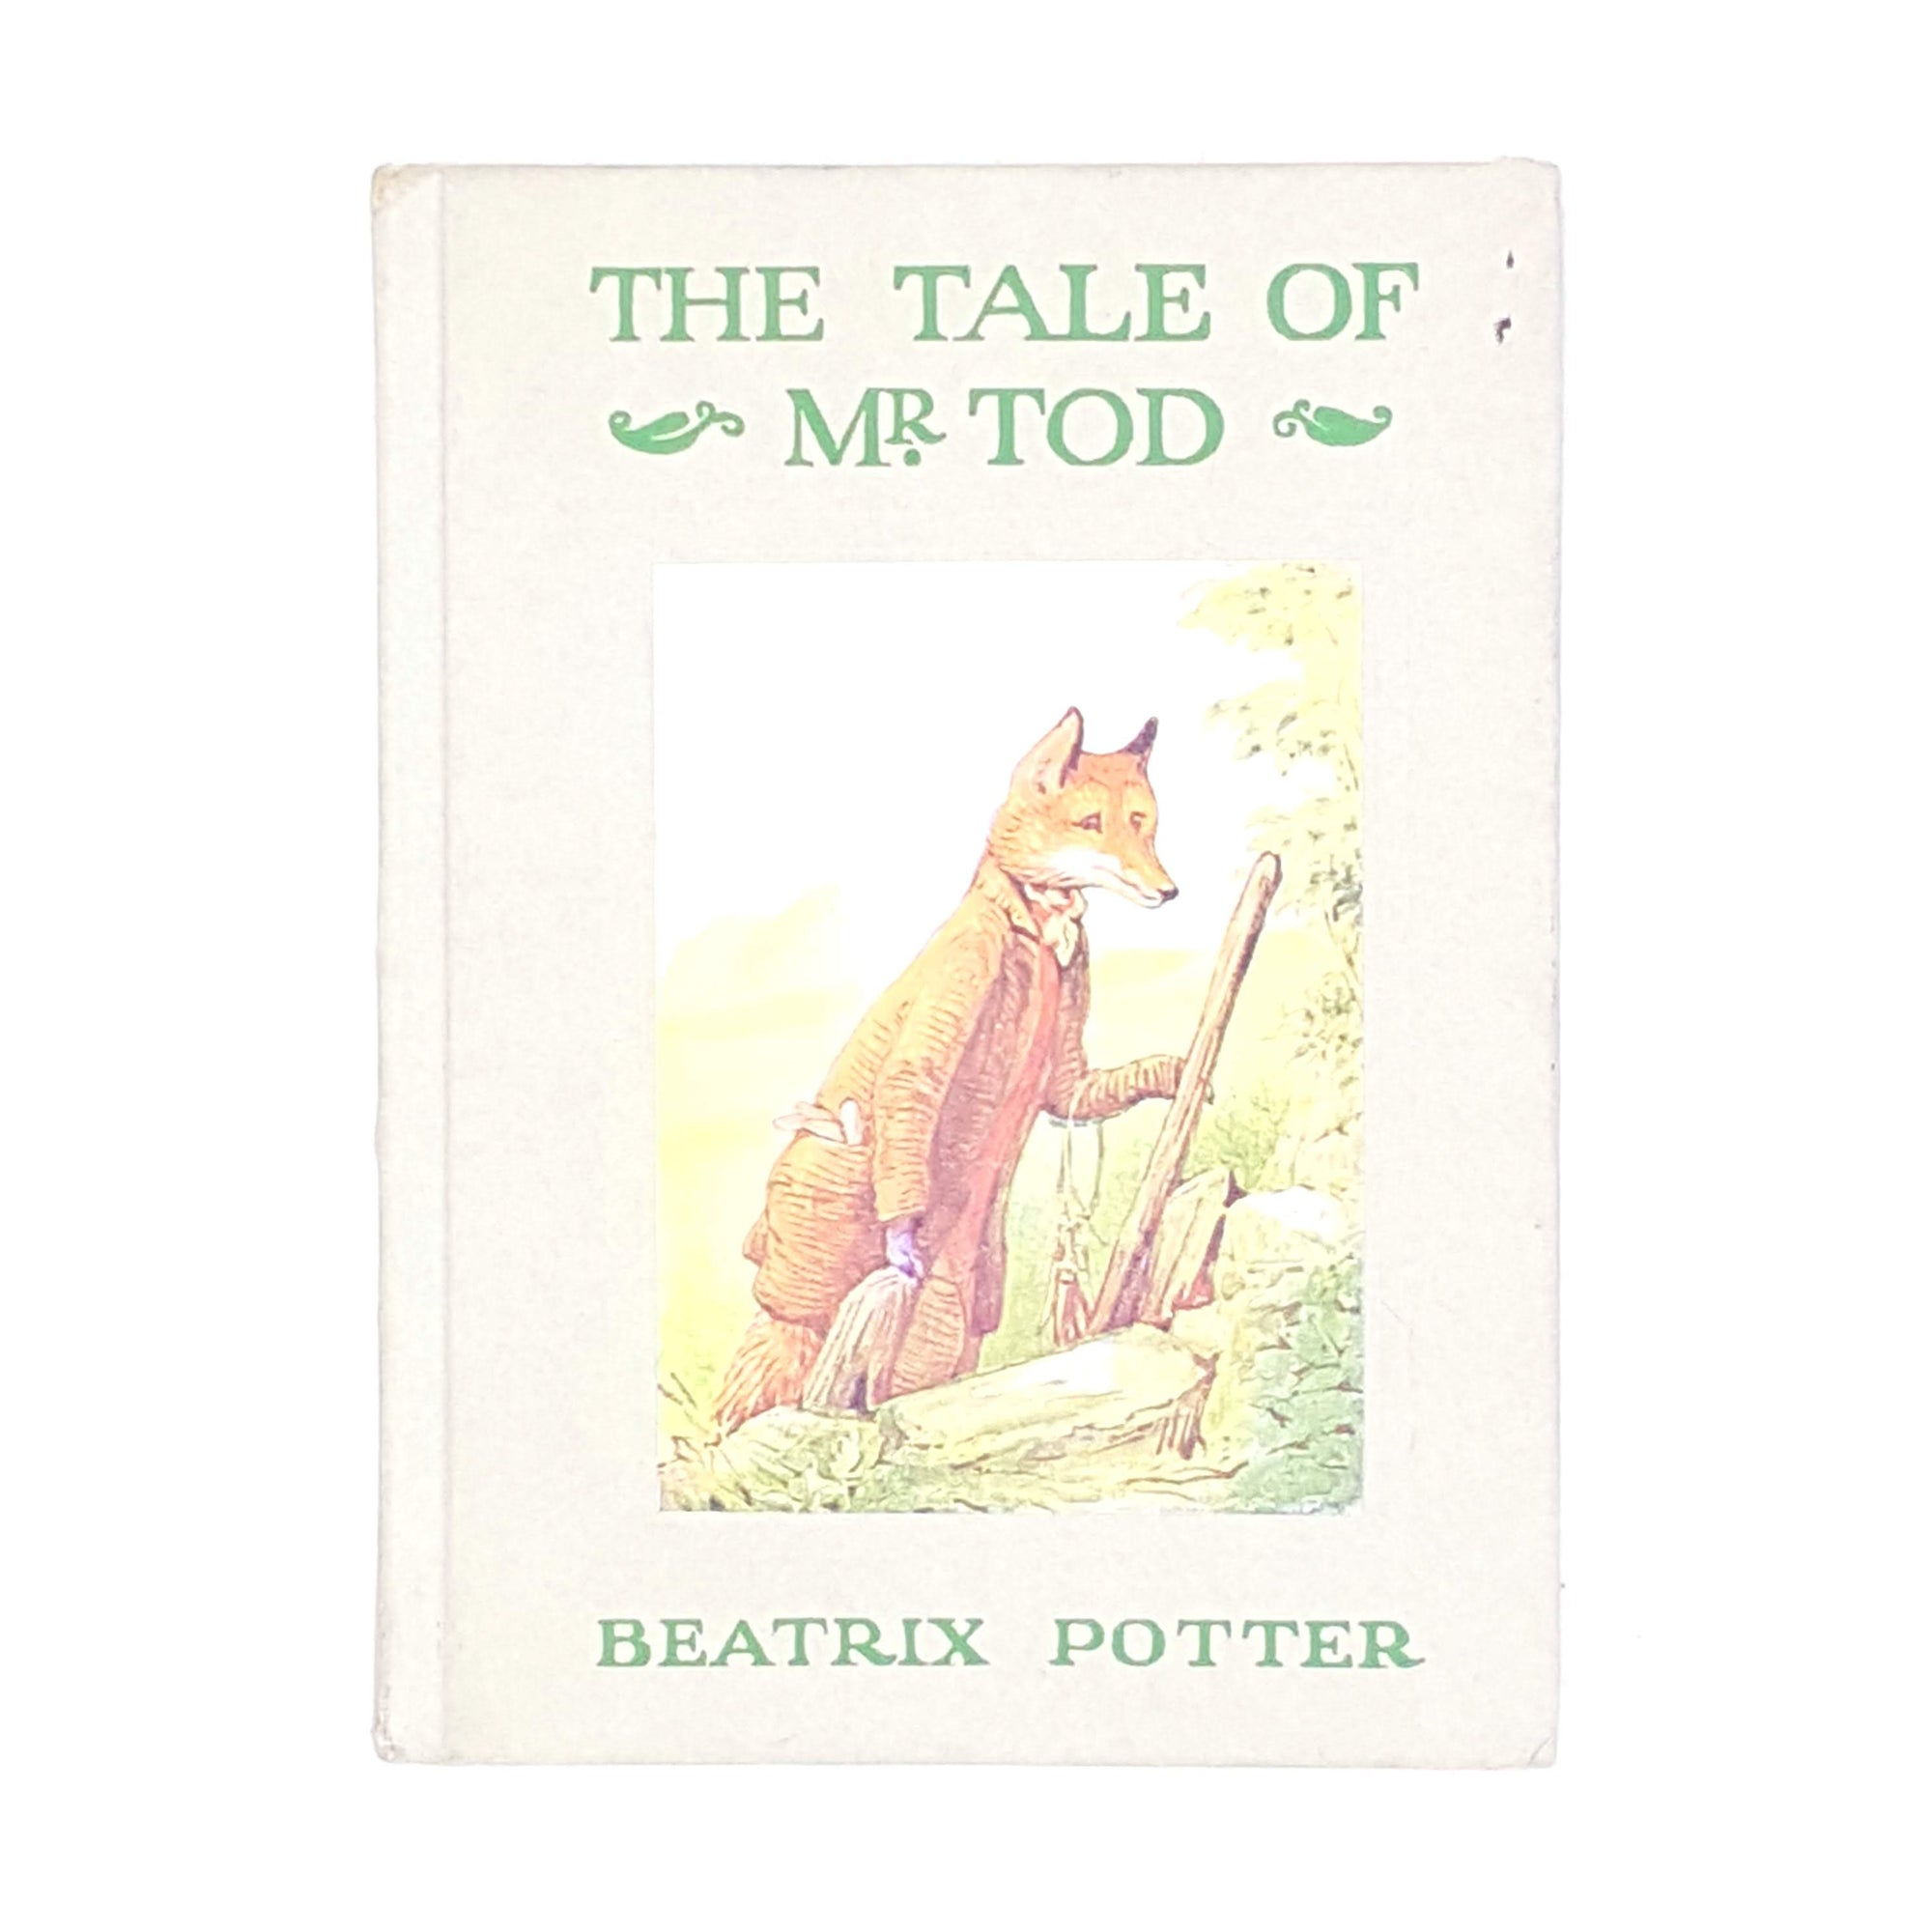 Beatrix Potter's The Tale of Mr. Tod, grey cover